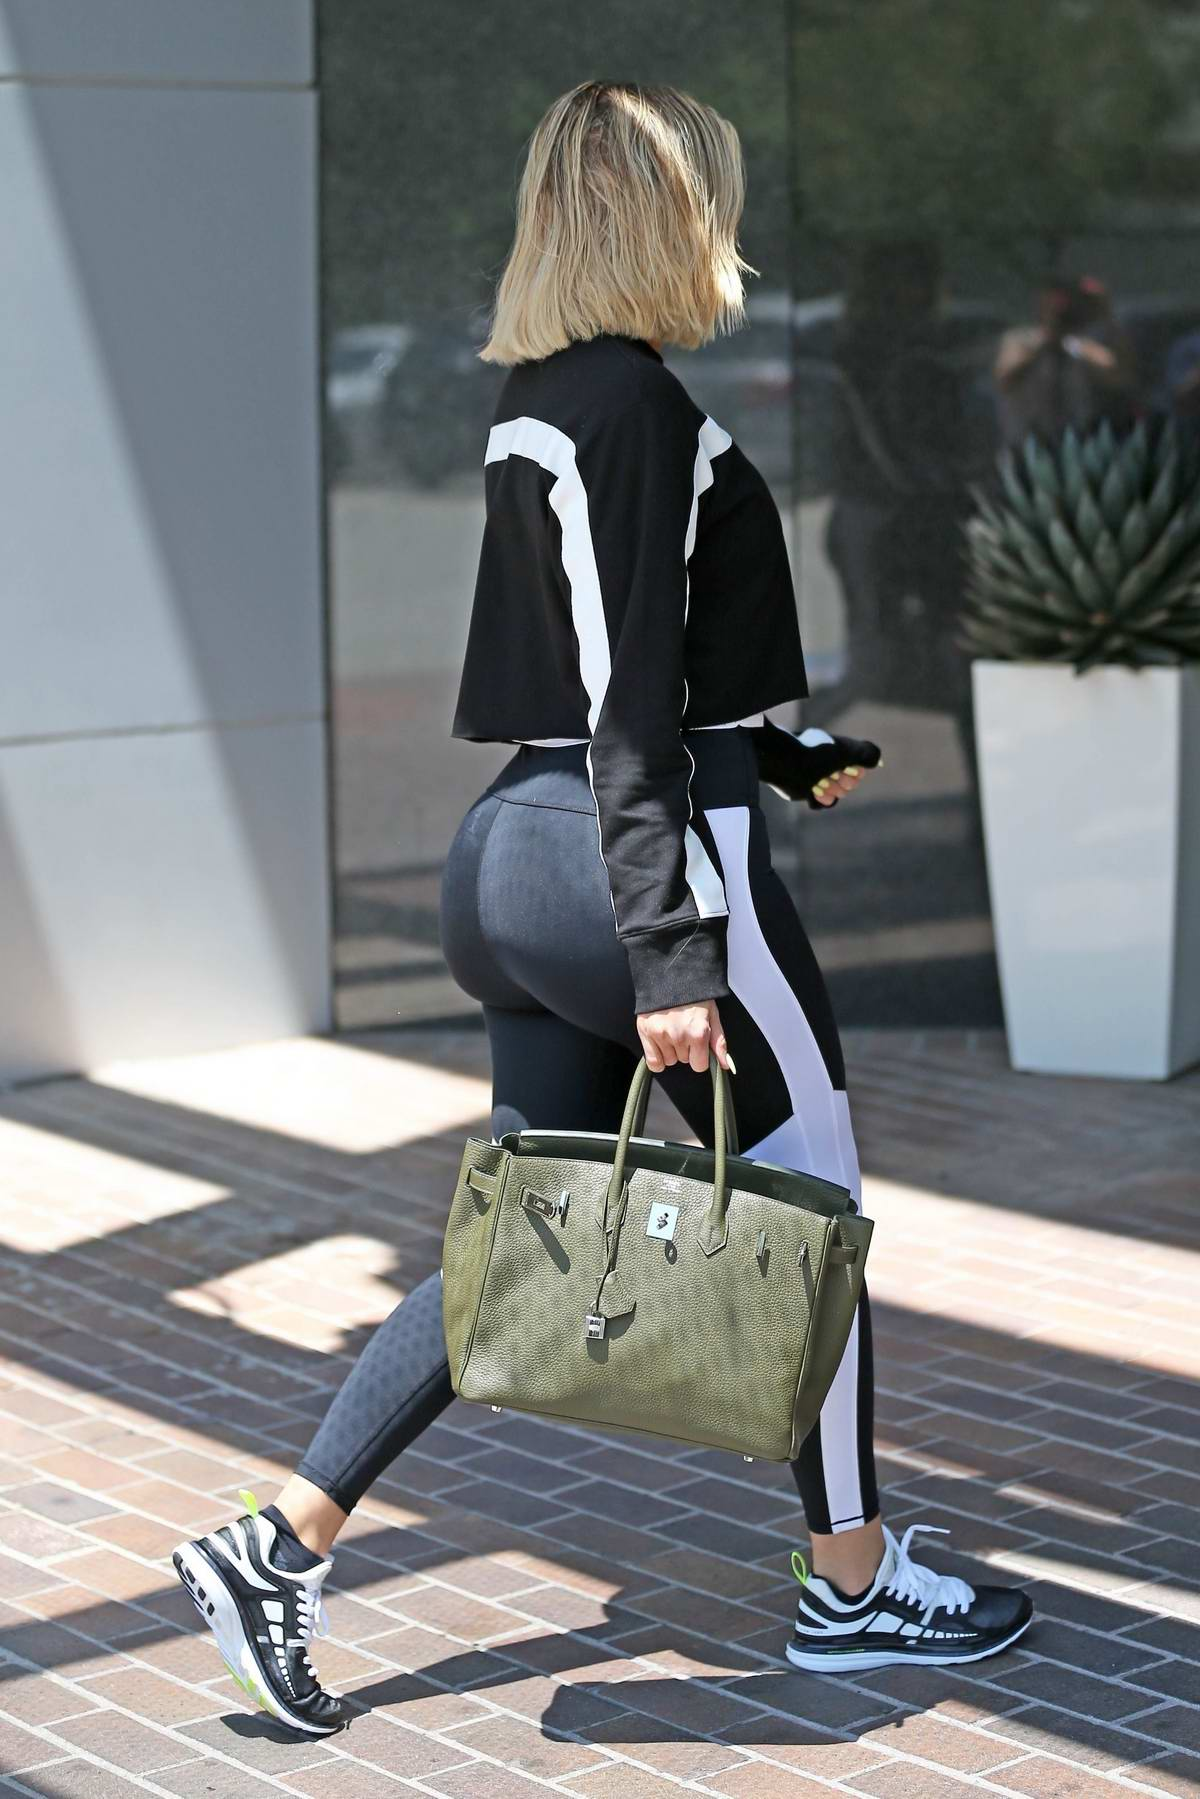 Khloe Kardashian rocked a crop top and leggings as she hits the gym in Los Angeles